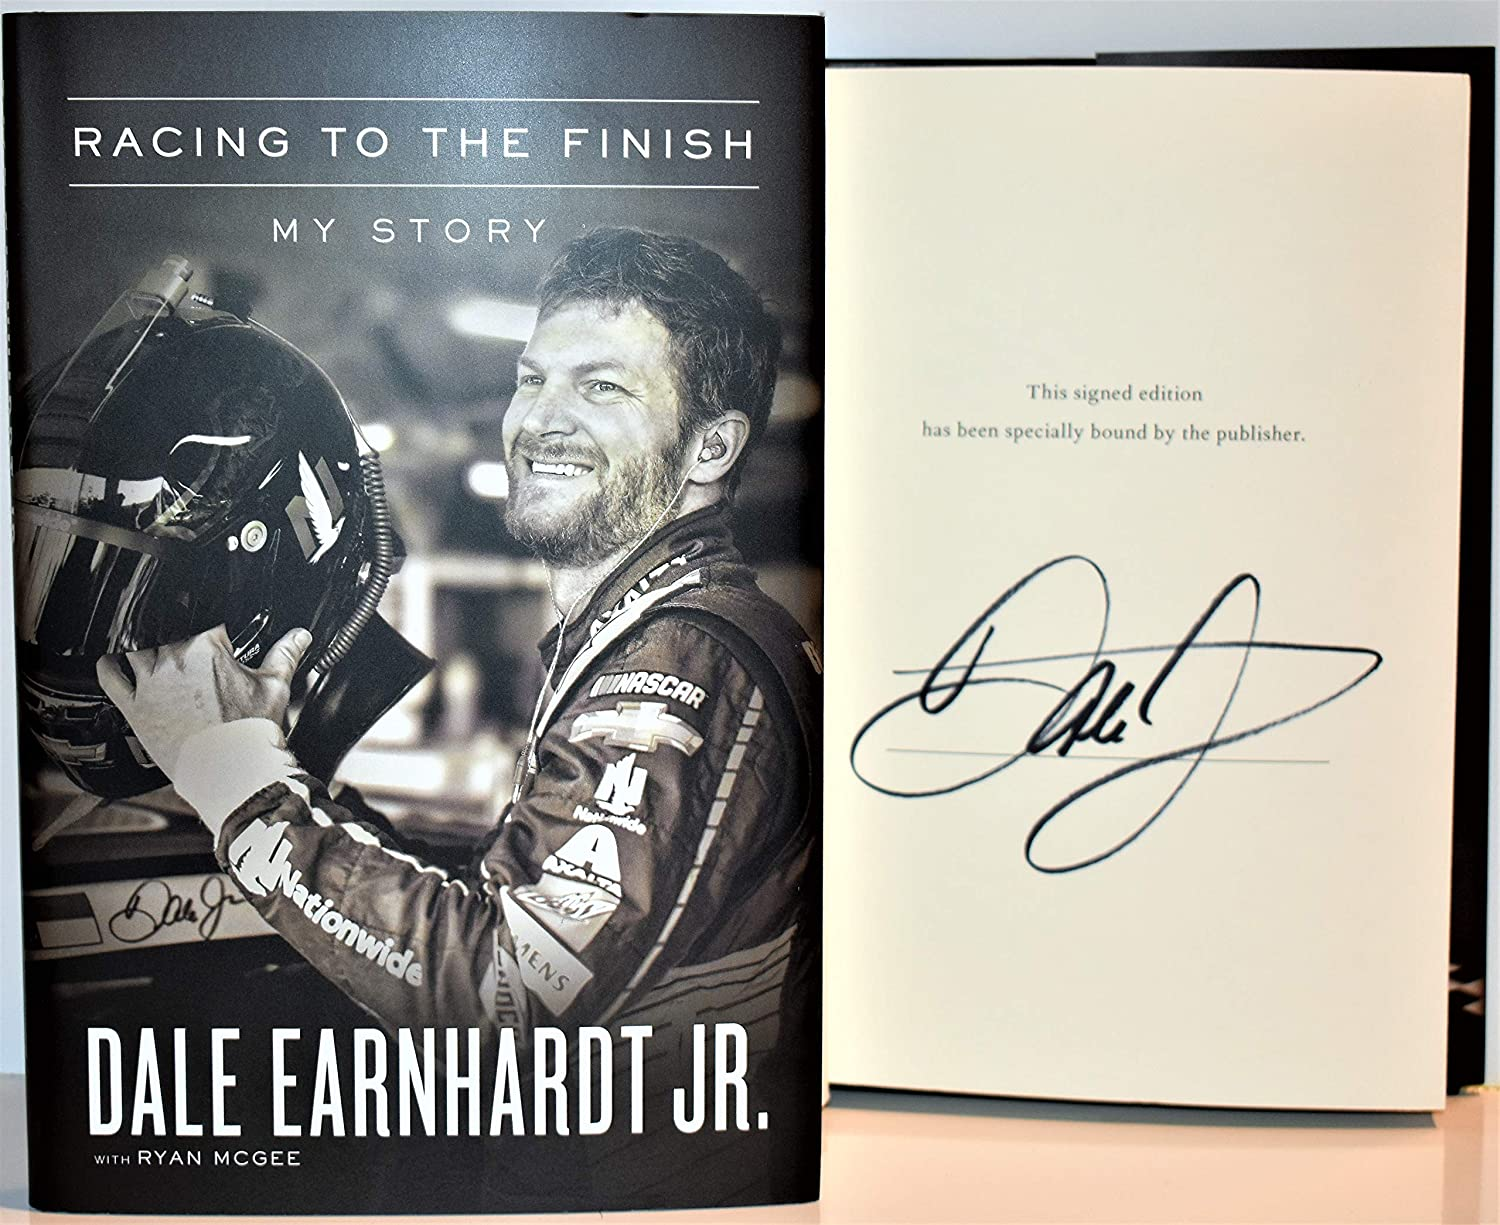 Racing to the Finish AUTOGRAPHED by Dale Earnhardt Jr (SIGNED BOOK) Signed Edition